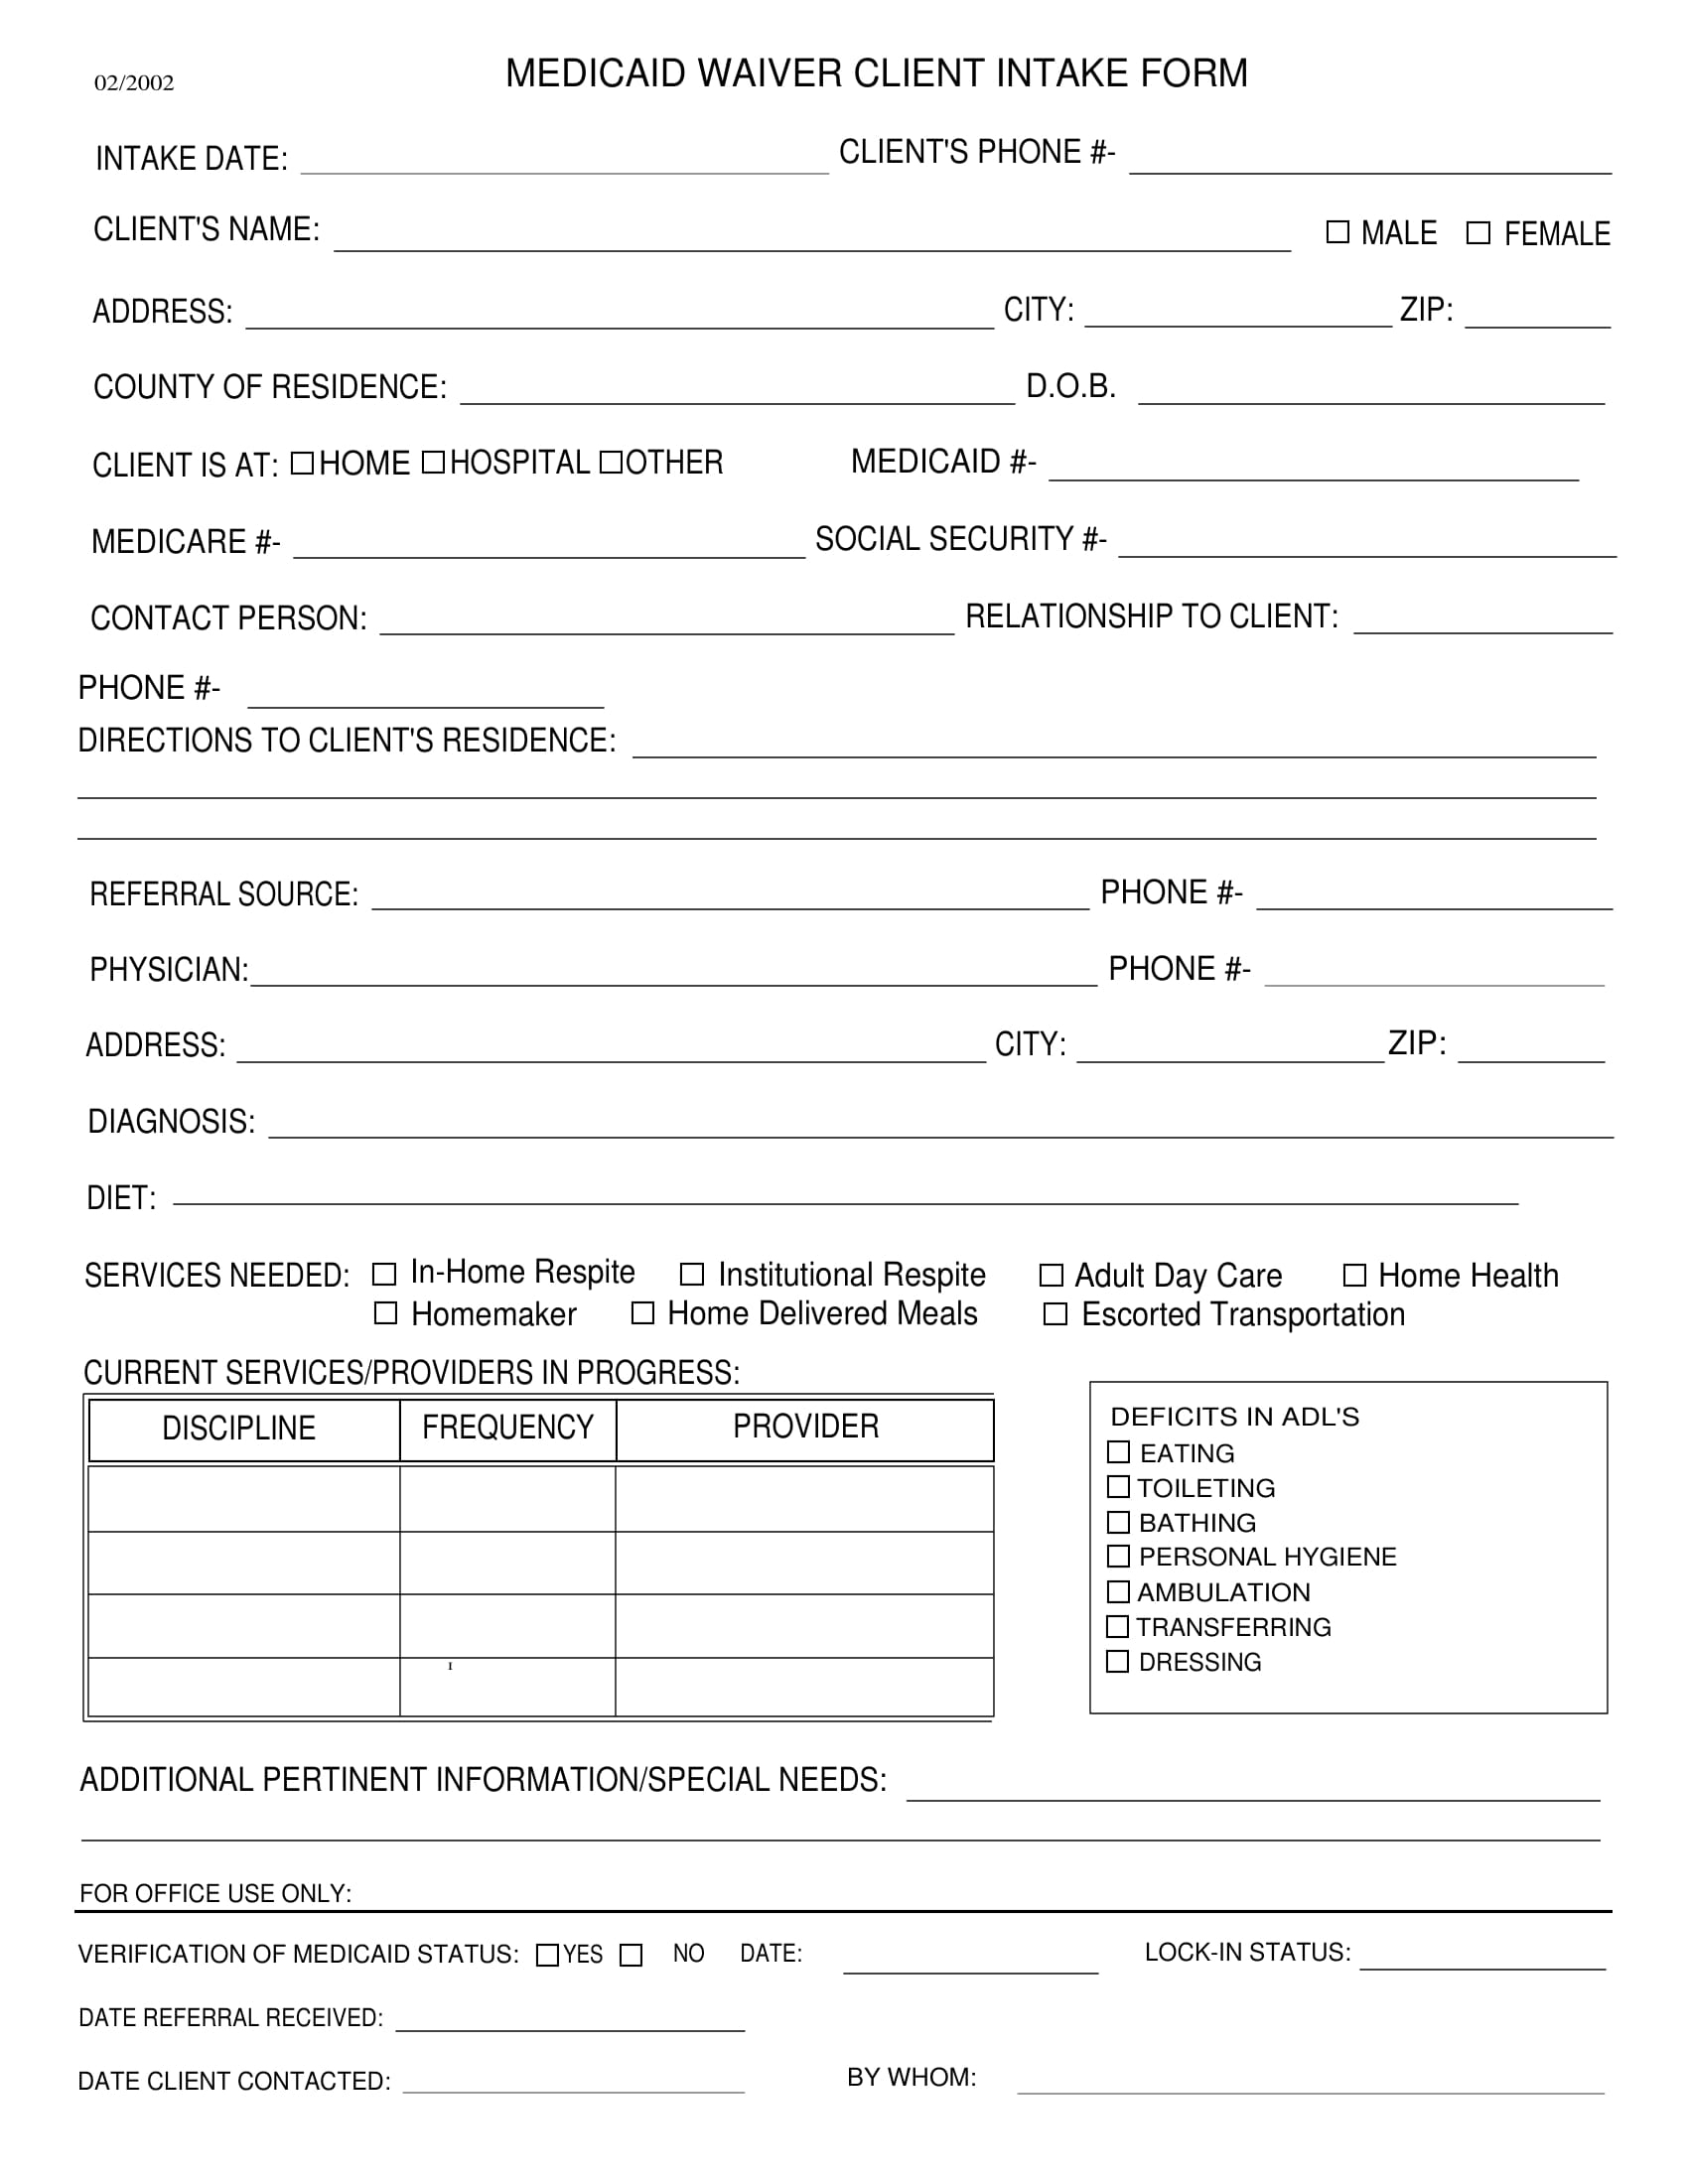 medicaid waiver client intake form 1